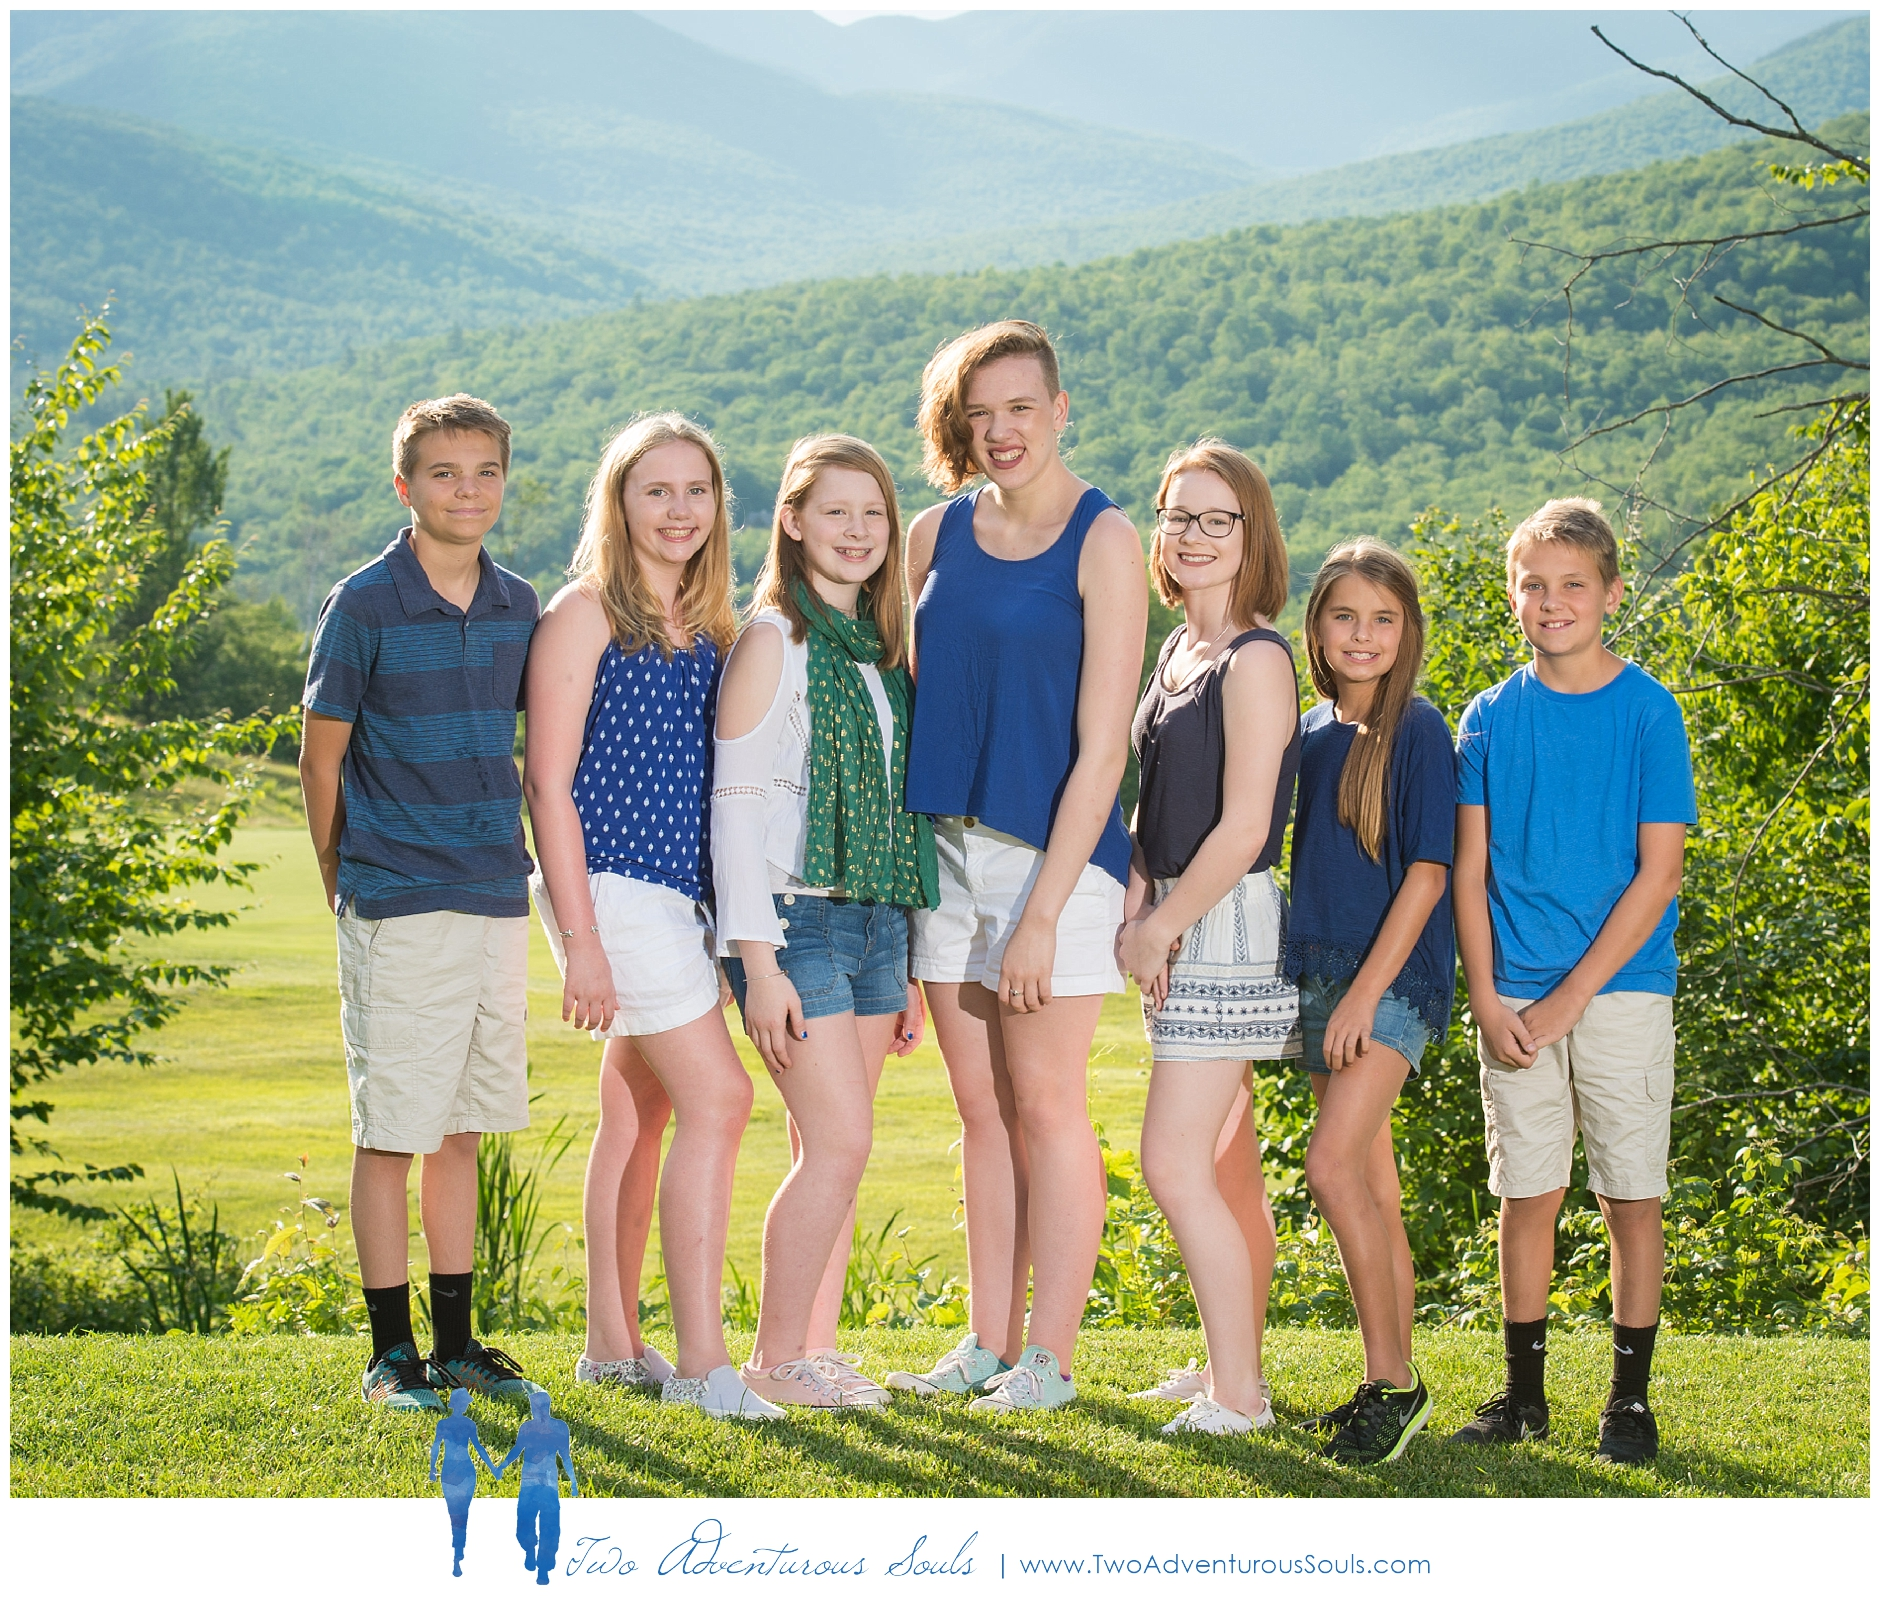 Sunday River Family Portraits in Newry Maine - Grandkids formal portraits